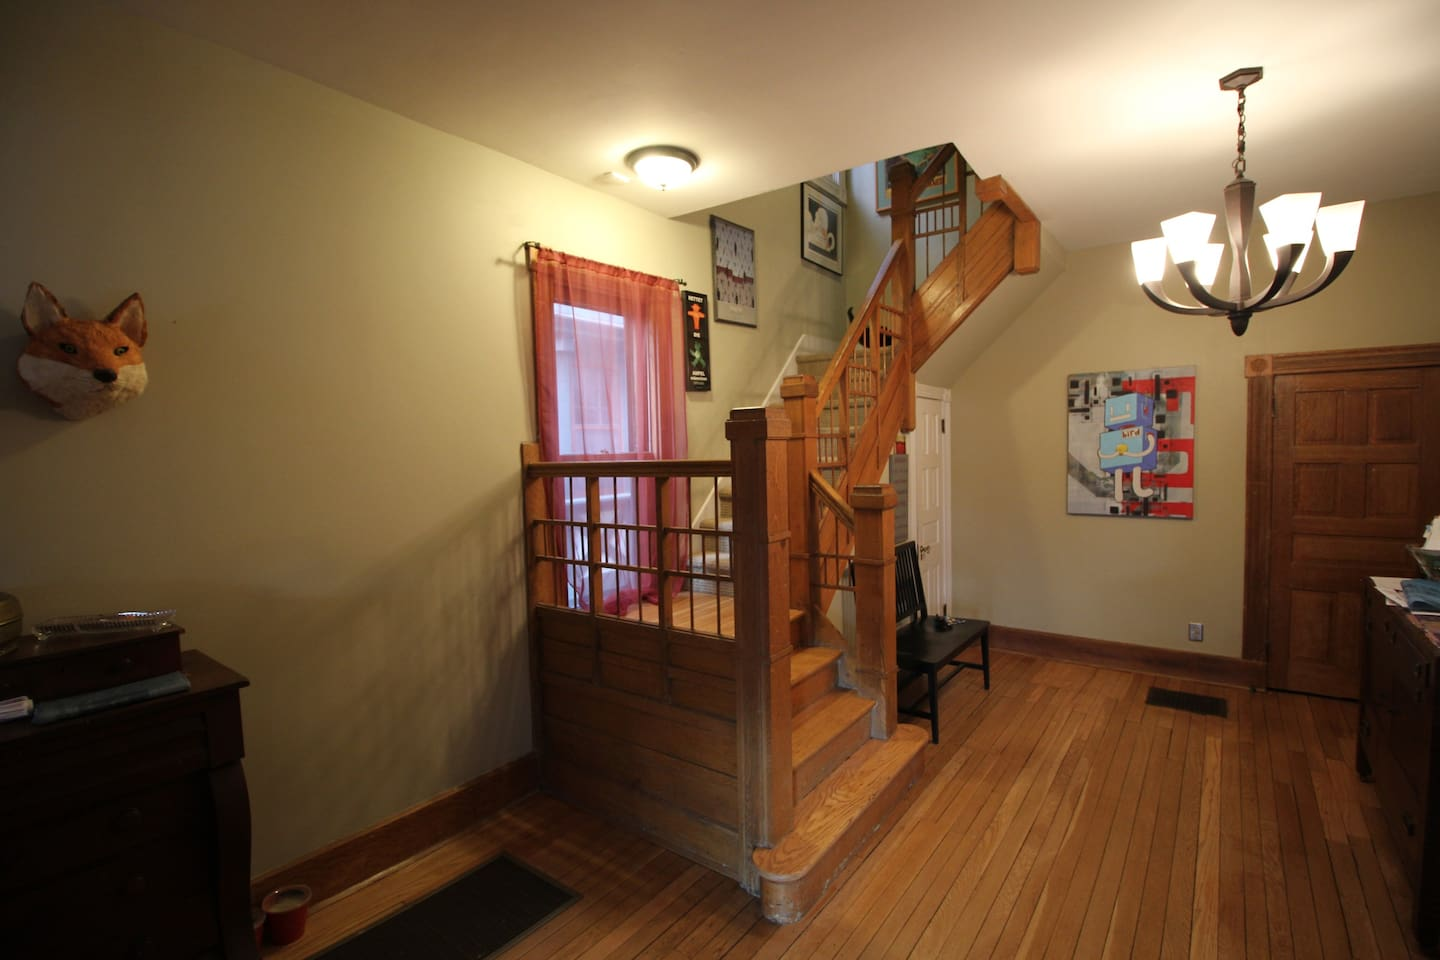 A dramatic foyer greets you as you come in the front door.